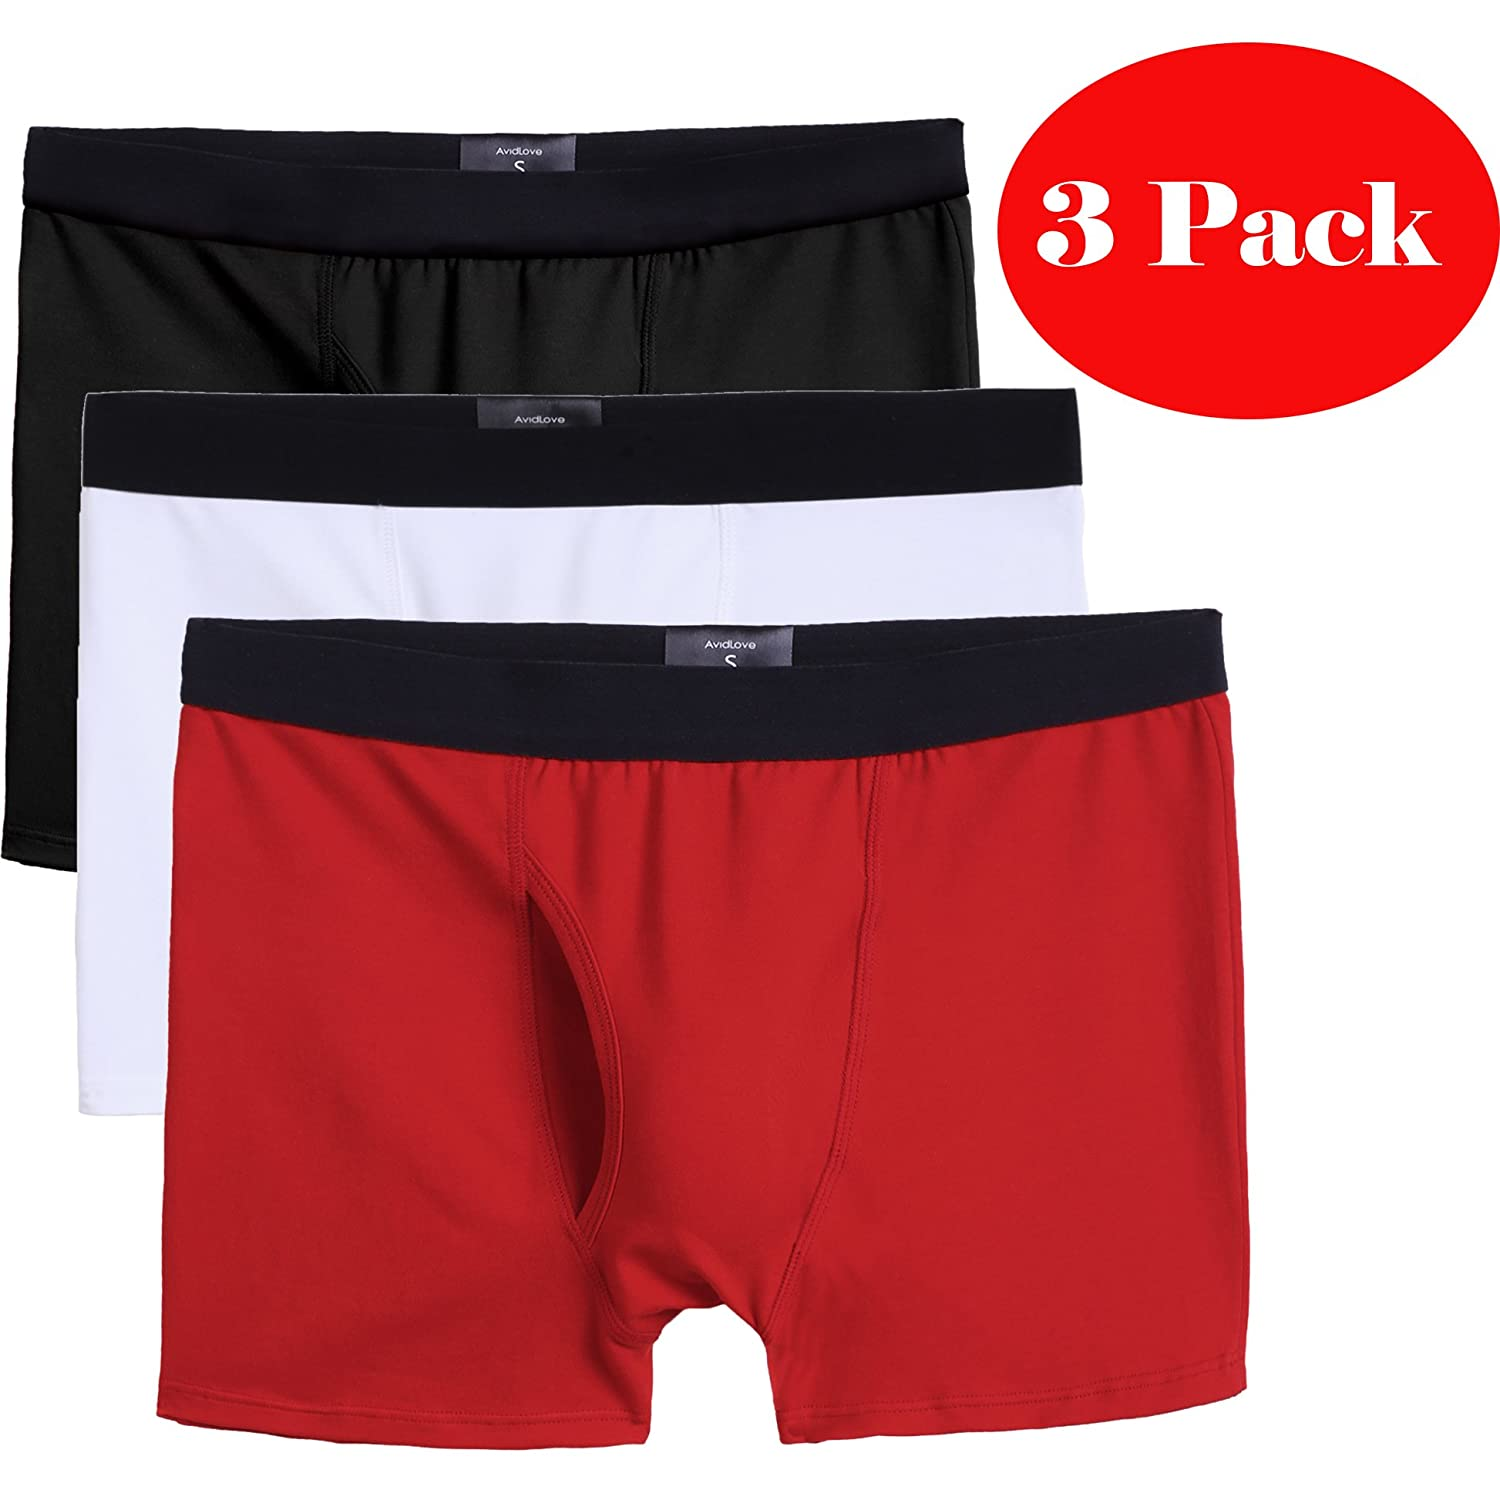 e7ab7cd3bf06 Avidlove Men's 3-Pack Stretch Boxer Brief Double Crotch Cotton Underwear at  Amazon Men's Clothing store: